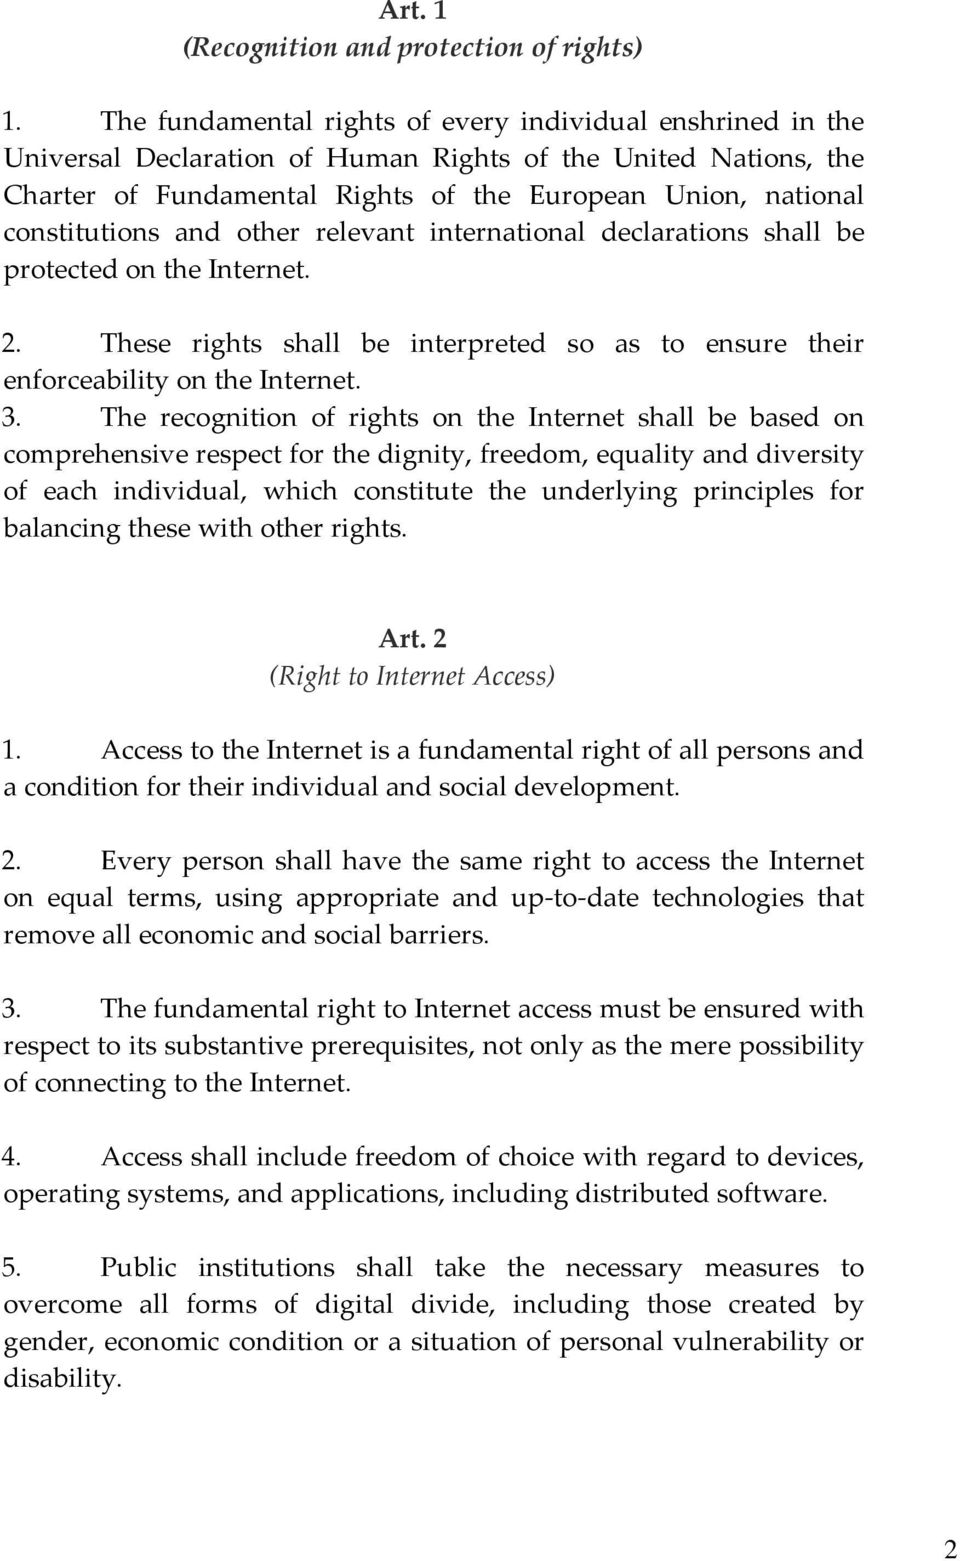 constitutions and other relevant international declarations shall be protected on the Internet. 2. These rights shall be interpreted so as to ensure their enforceability on the Internet. 3.